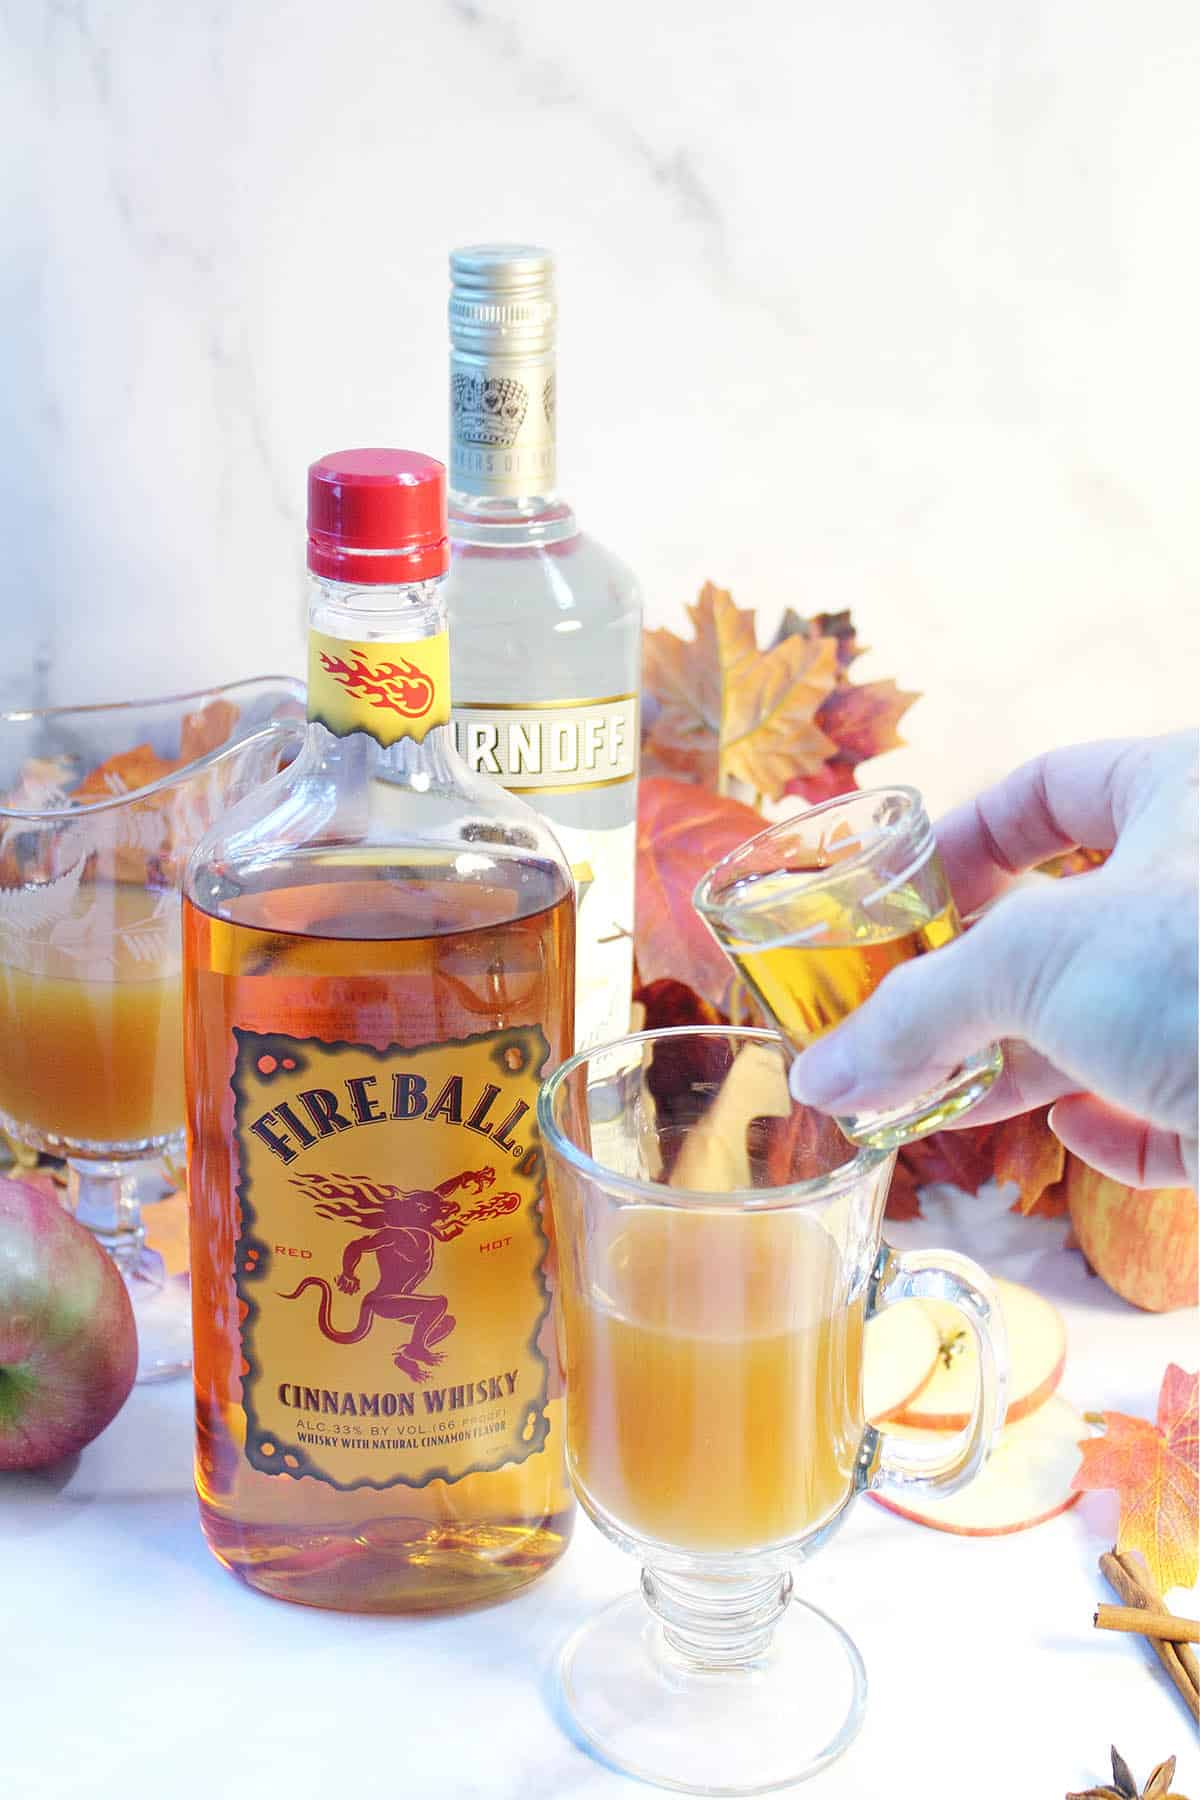 Adding fireball to cider with bottle next to it.